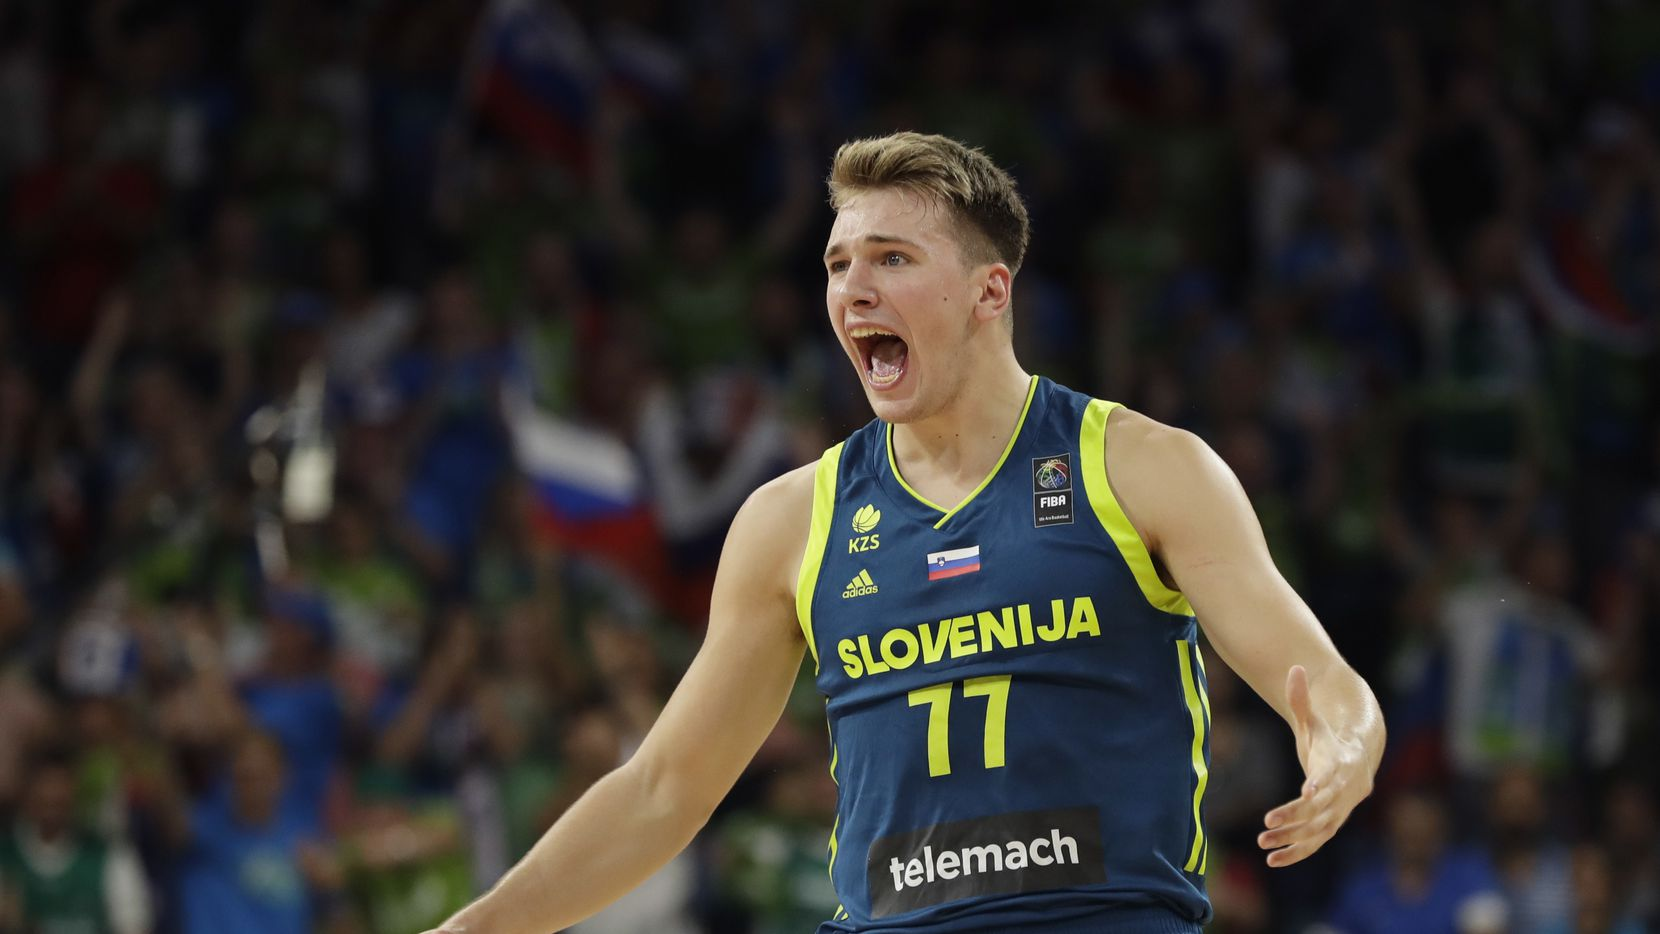 Slovenia's Luka Doncic reacts during their Eurobasket European Basketball Championship semifinal match against Spain in Istanbul, Thursday, Sept. 14. 2017.